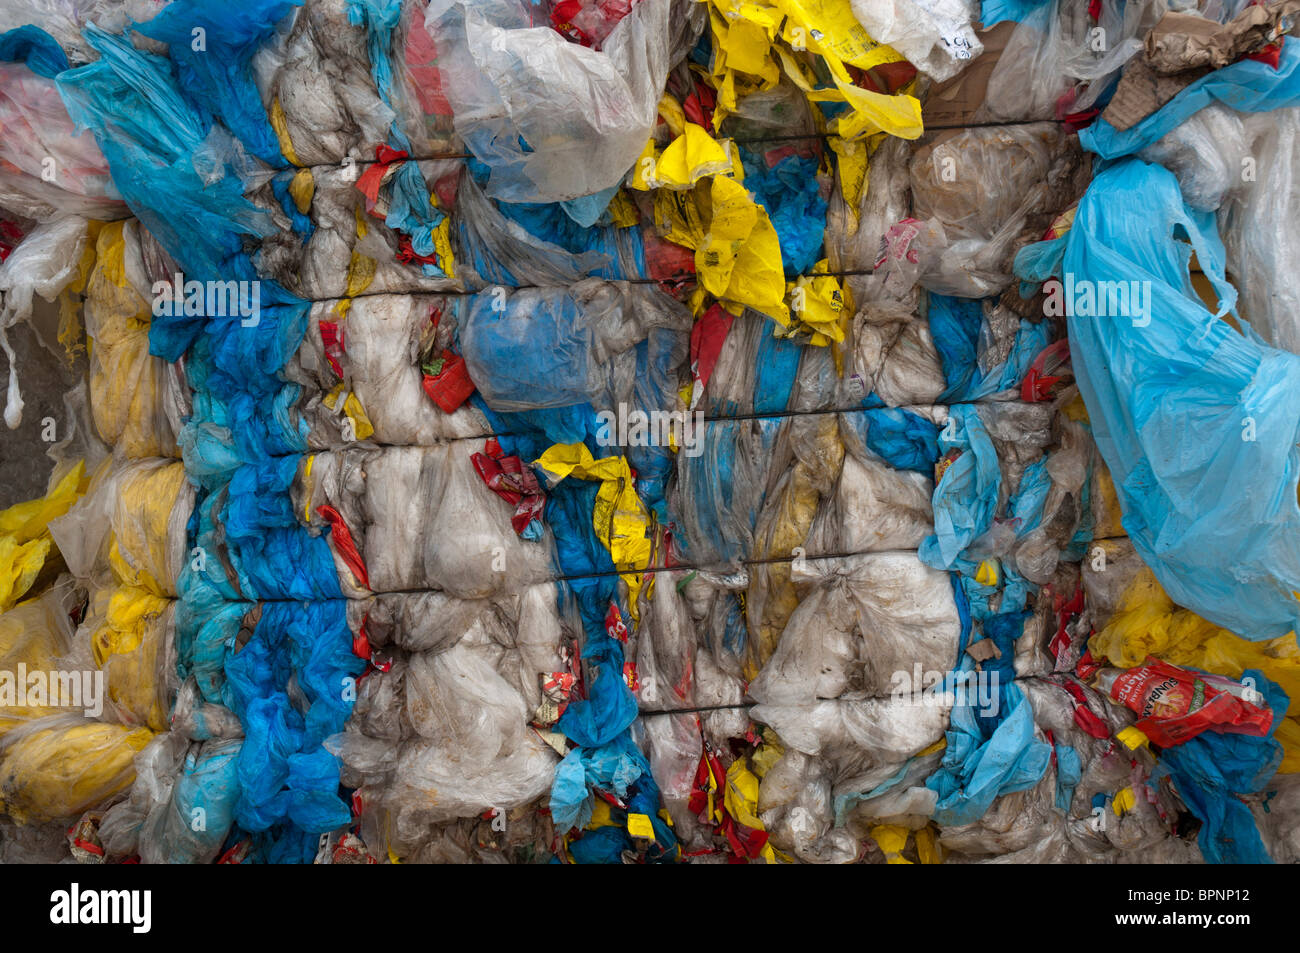 Baled plastic bags for recycling at a recycling plant - Stock Image